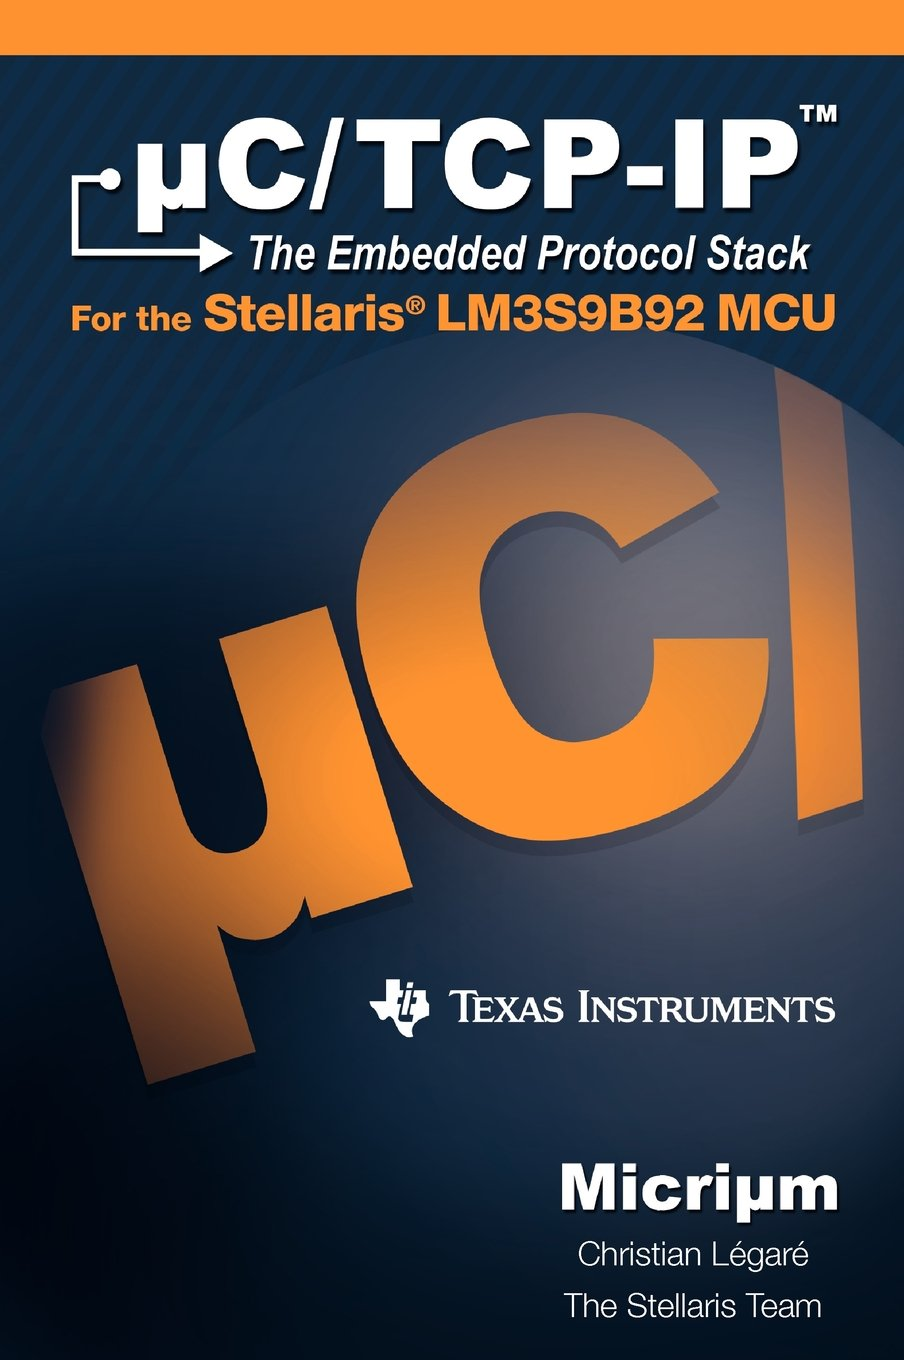 uC/TCP-IP: The Embedded Protocol Stack and the Texas Instruments LM3S9B92 PDF